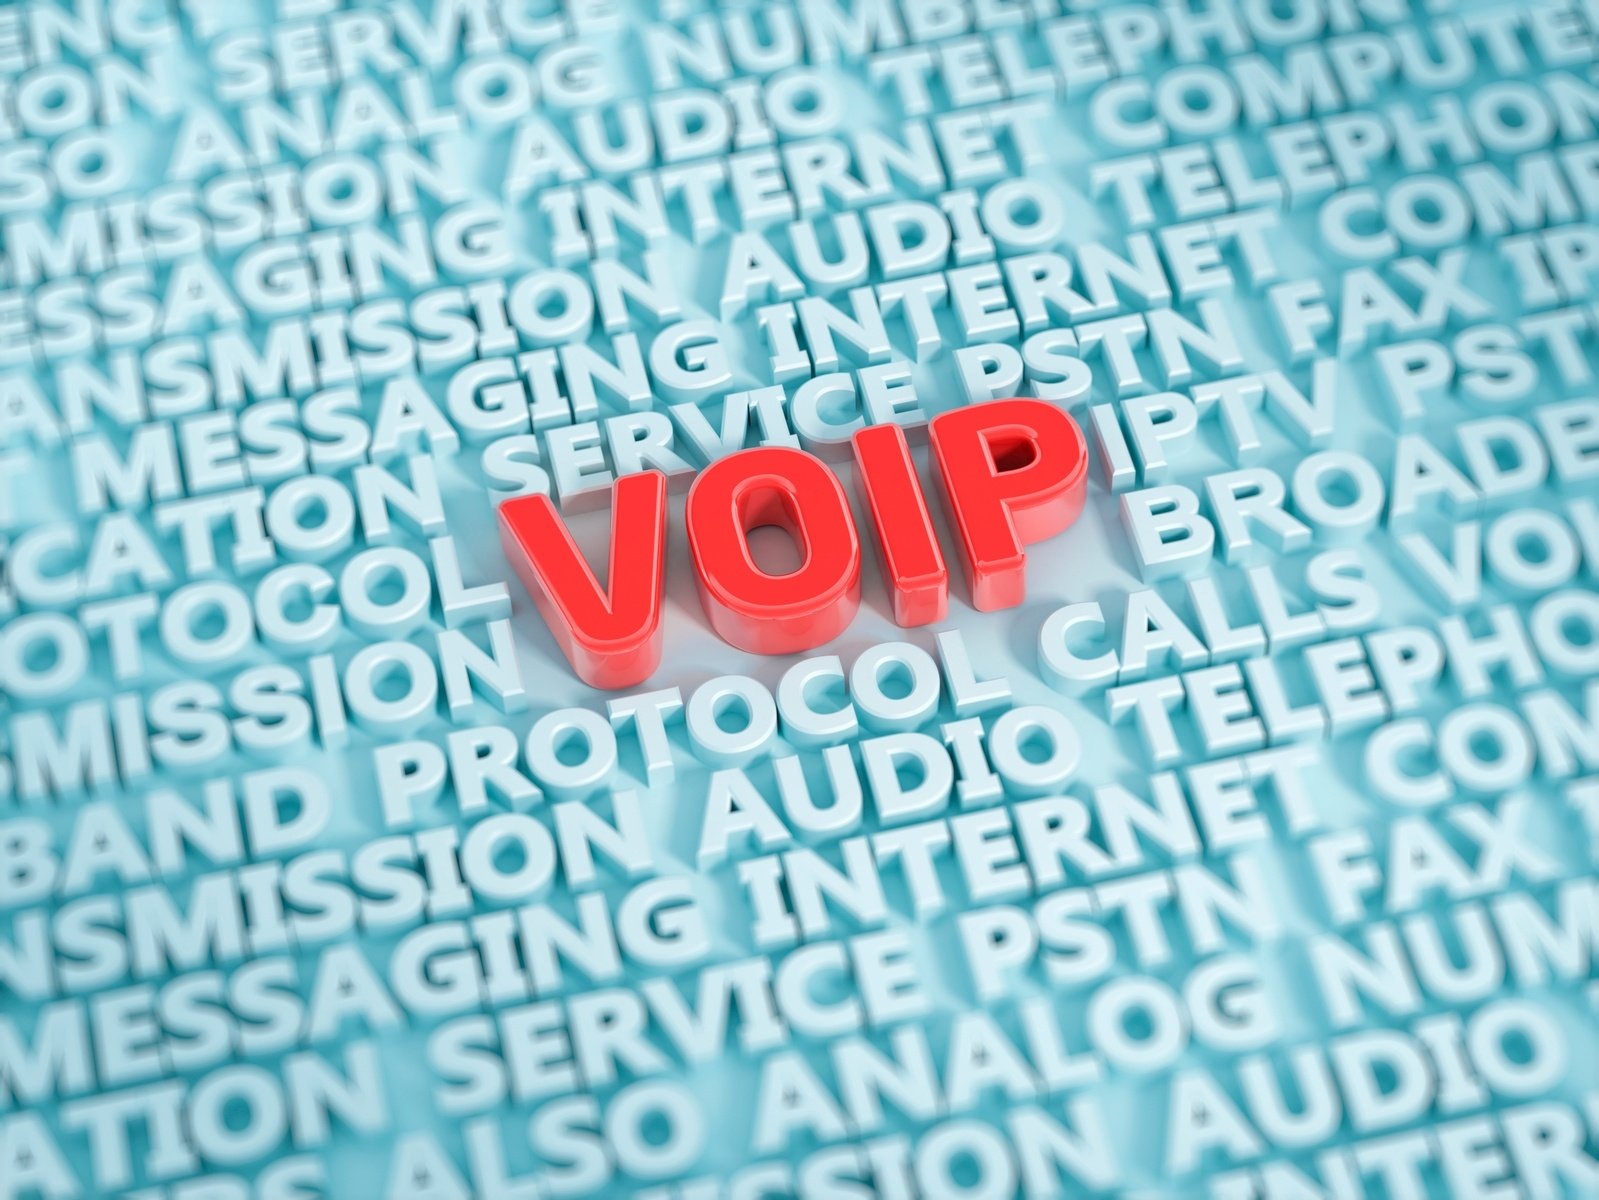 voip opnet thesis Son i dedicate this thesis to all the members of my family  voice traffics based  on user perception and voip priority mode in mobile  in real simulation  environments such as the lte-sim, opnet, or ns2/3 is neces- sary.